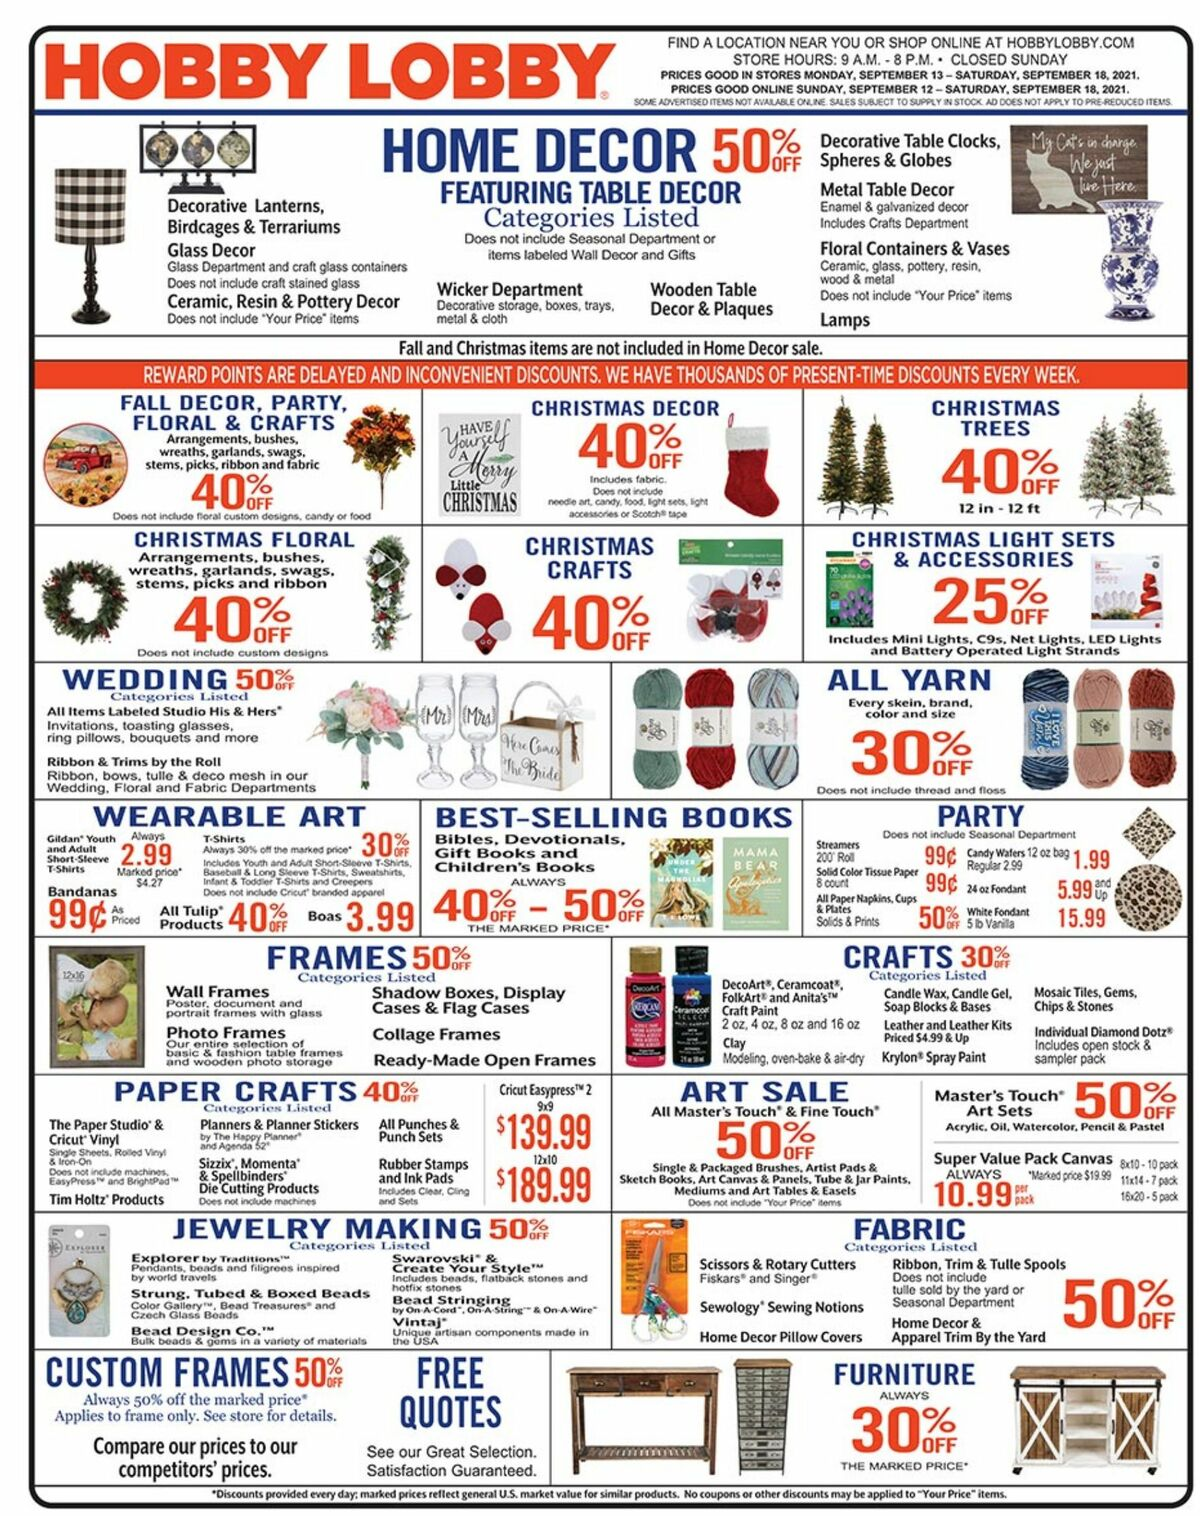 Hobby Lobby Weekly Ad from September 13